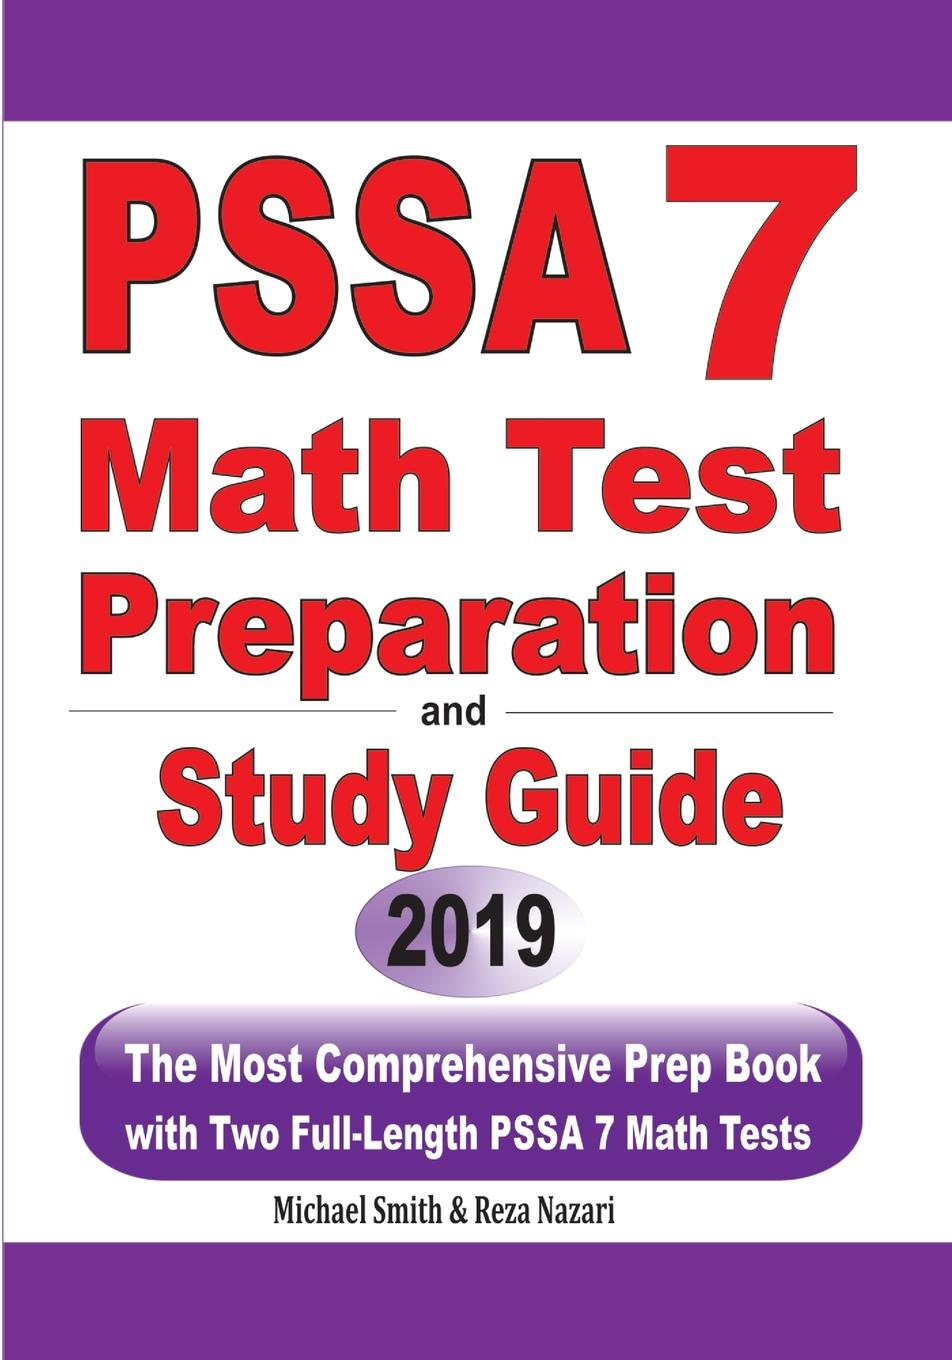 Michael Smith, Reza Nazari PSSA 7 Math Test Preparation and Study Guide. The Most Comprehensive Prep Book with Two Full-Length PSSA Math Tests